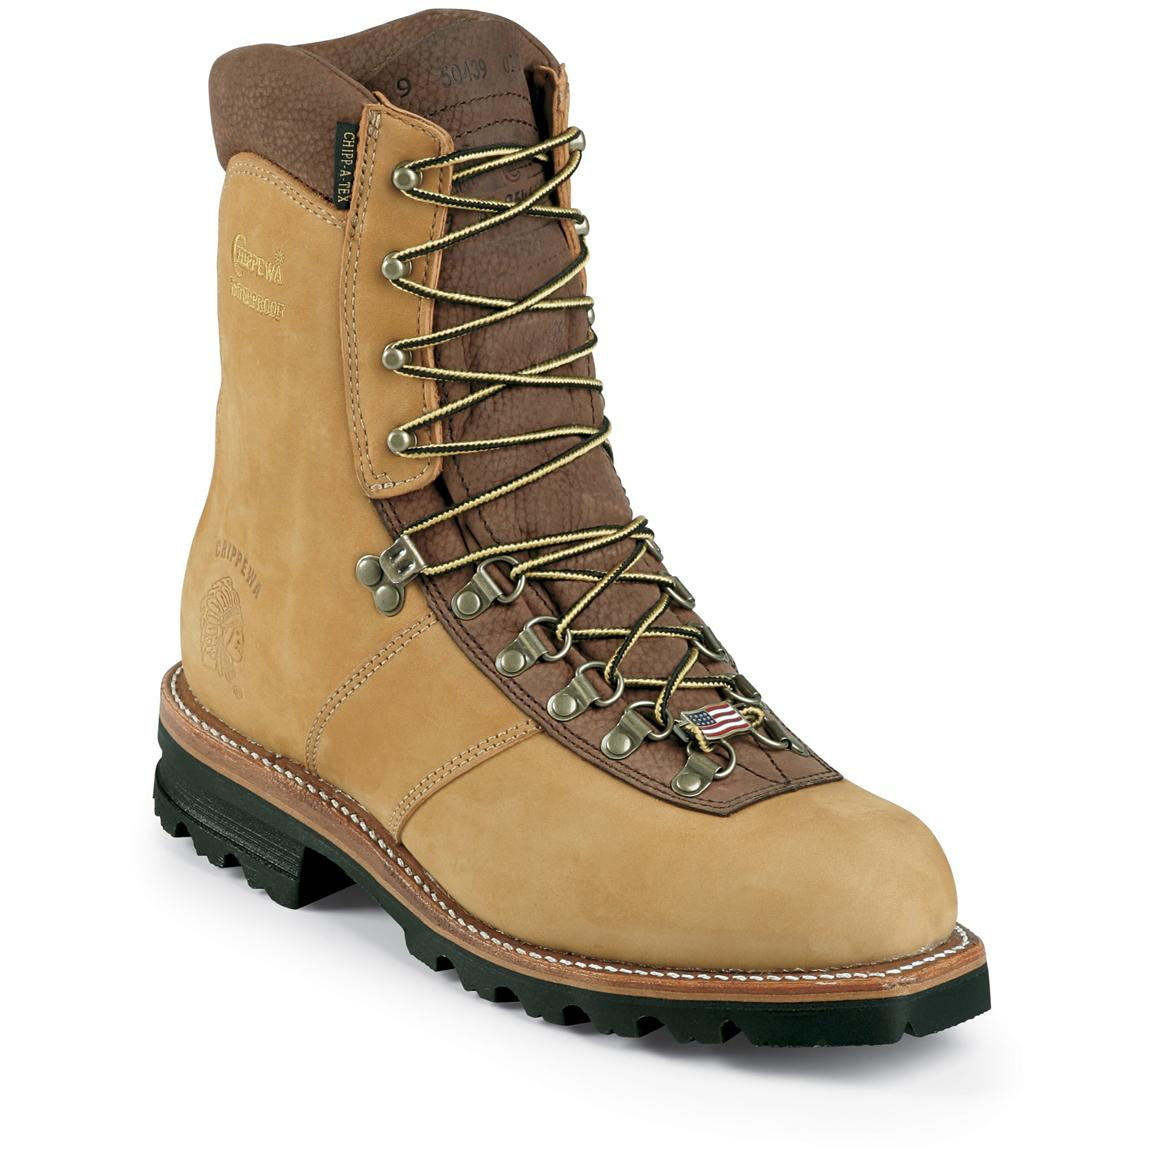 Men's Chippewa® 9 inch Waterproof Insulated -40° Work Boots